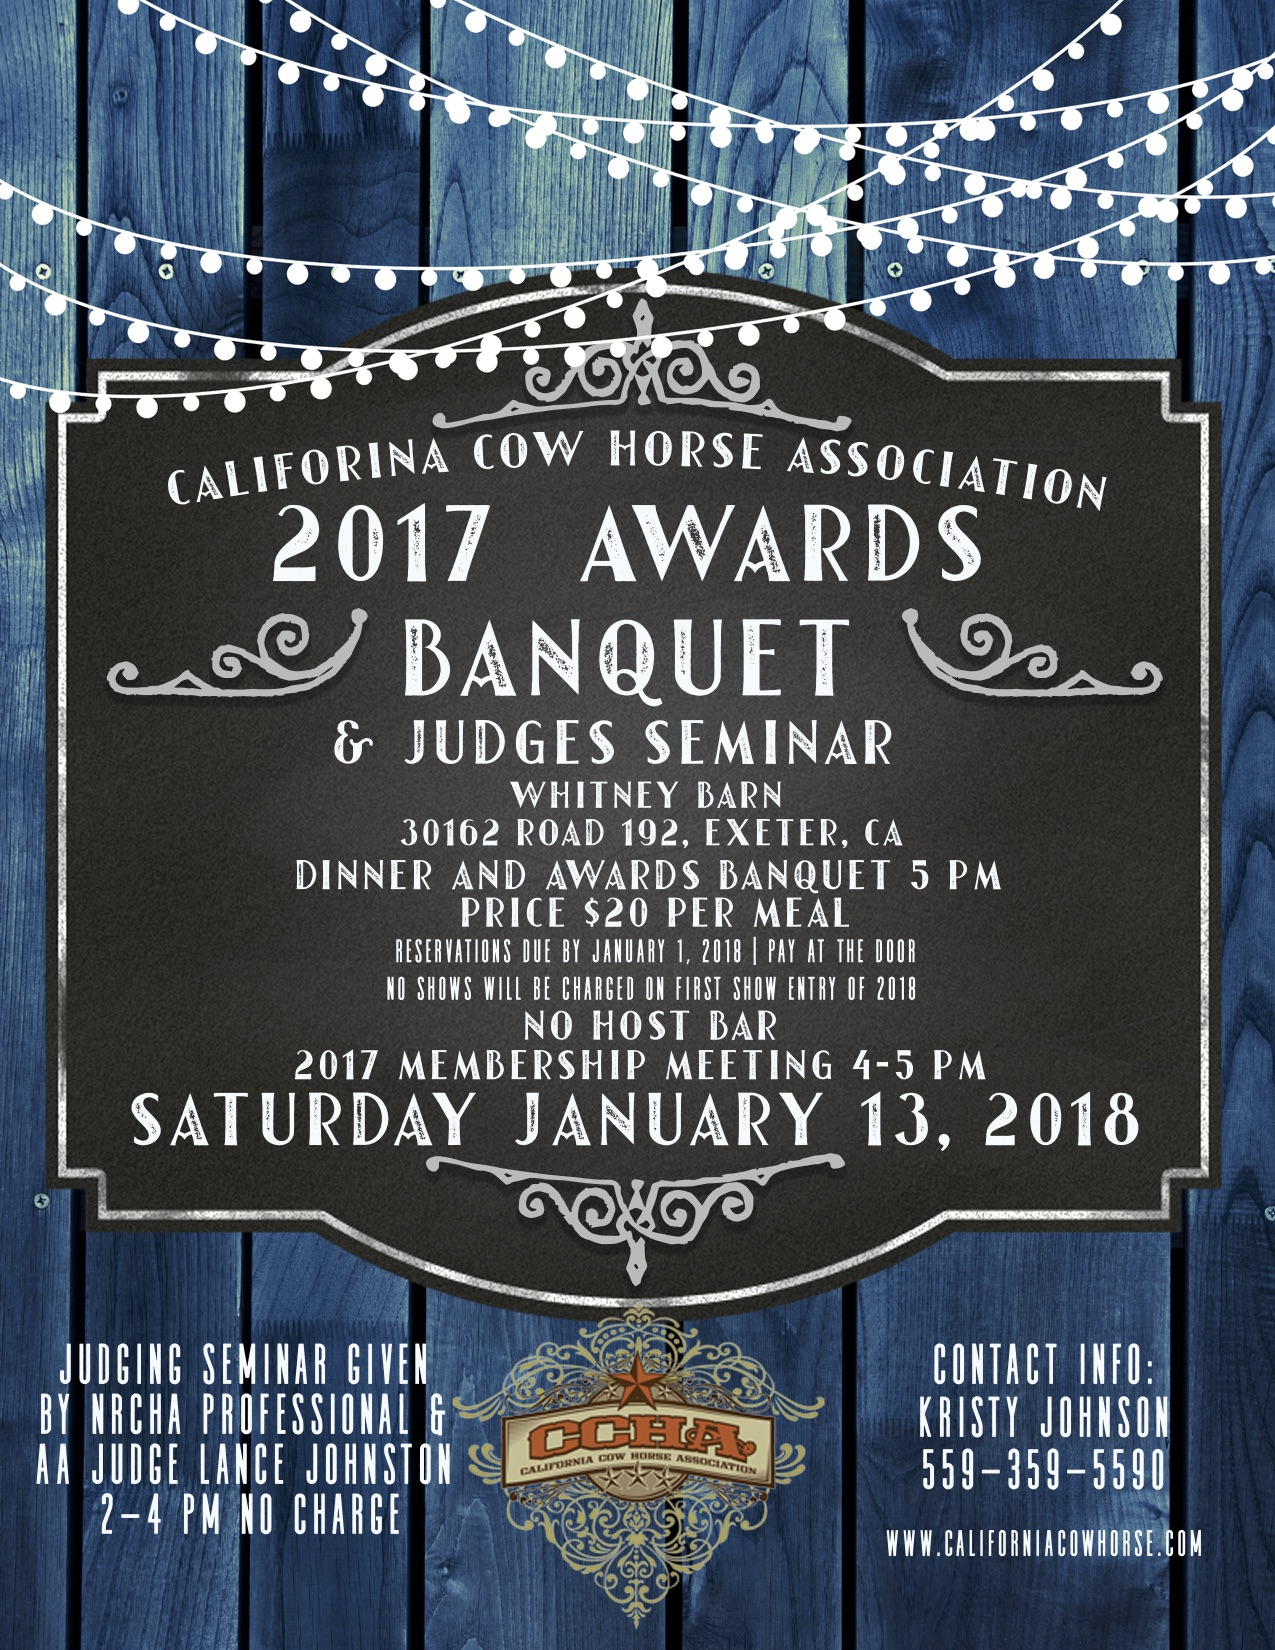 2017 Awards Banquet Poster